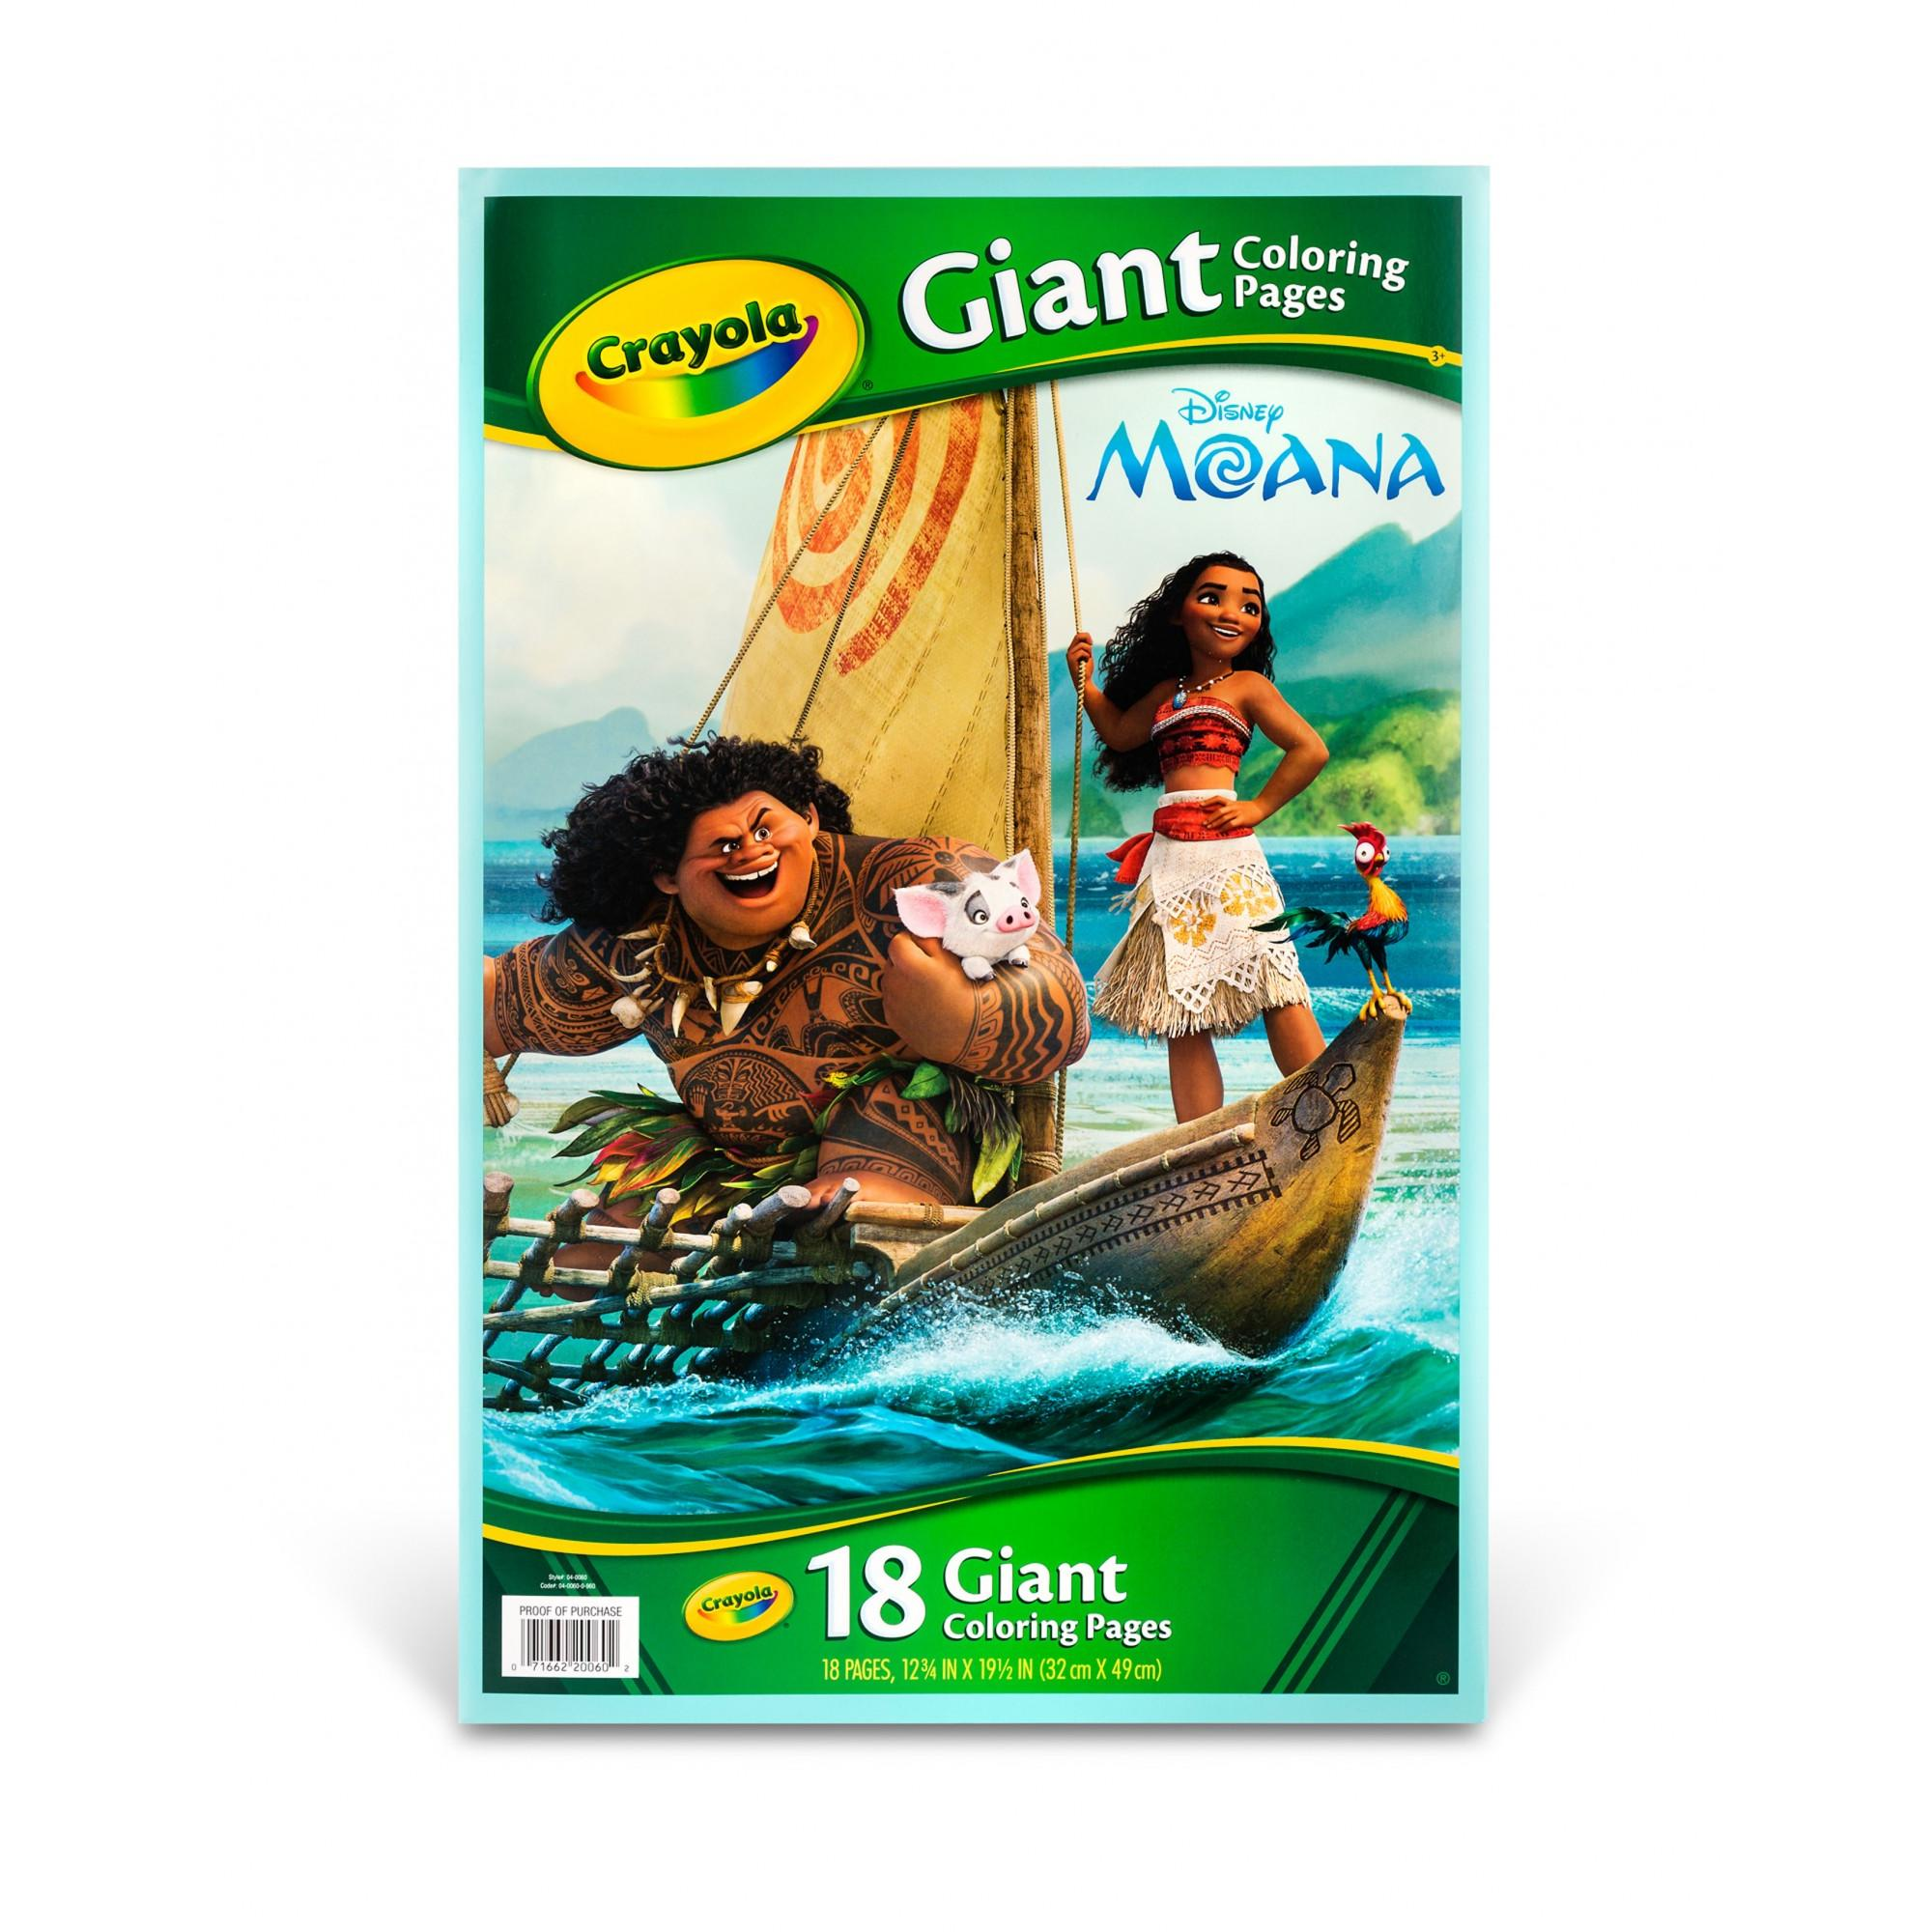 Crayola, Disney's Moana, 18 Giant Coloring Pages, Gift for Girls by Crayola